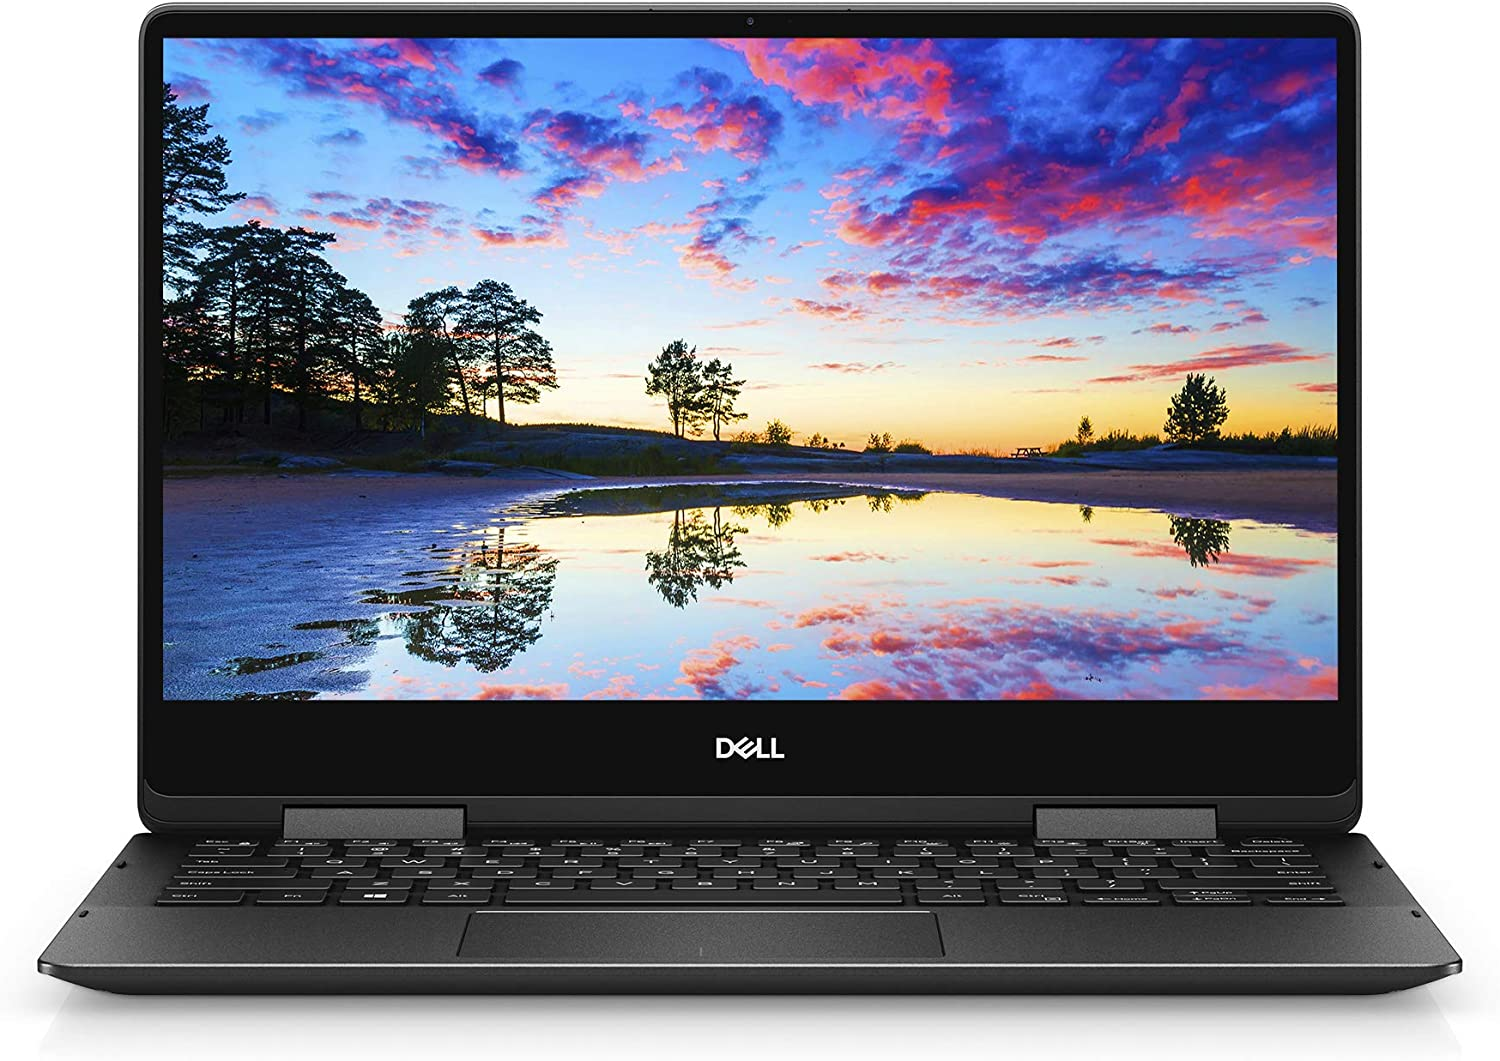 "Dell Inspiron 13 2-in-1 7386-13.3"" QHD Touch - i7-8565U - 16GB - 256GB SSD - Black"